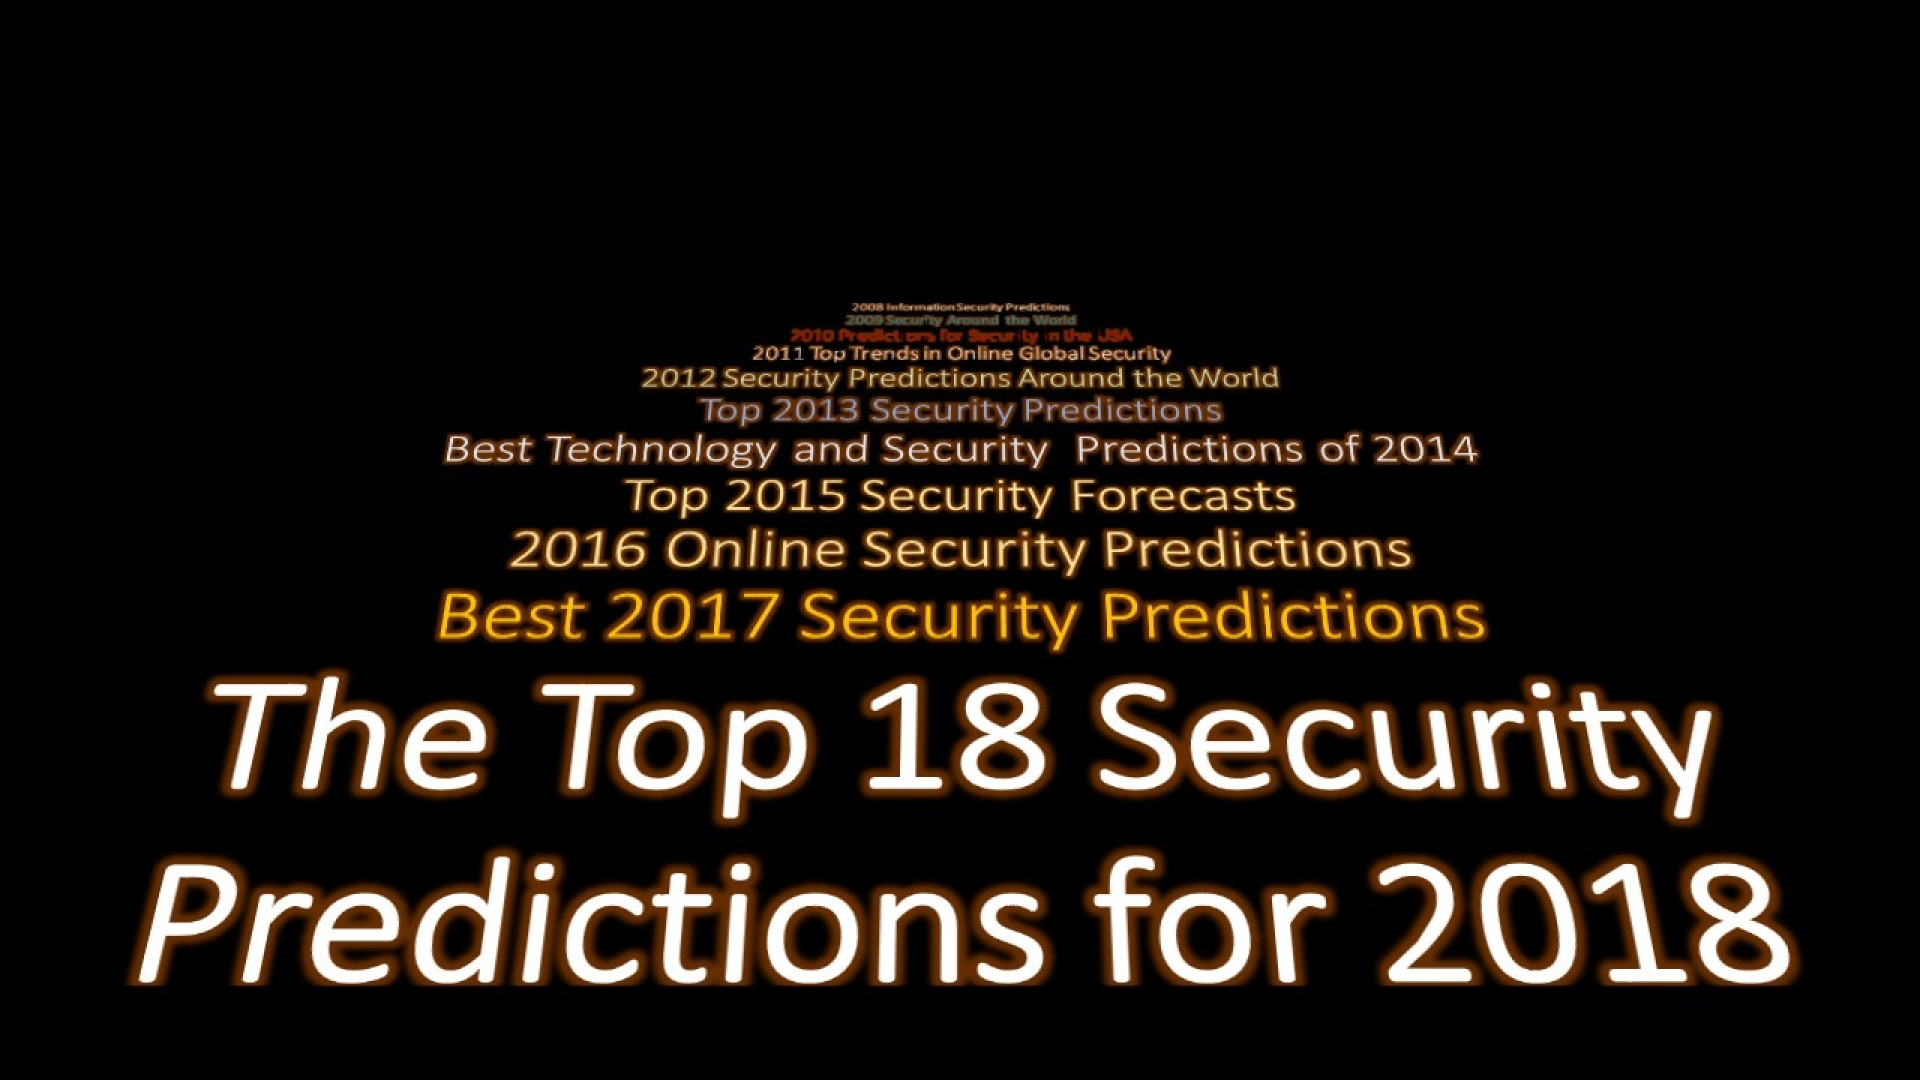 020 Predictions 2018 Cover  5 Research Paper Cyber Security Unique Ideas1920